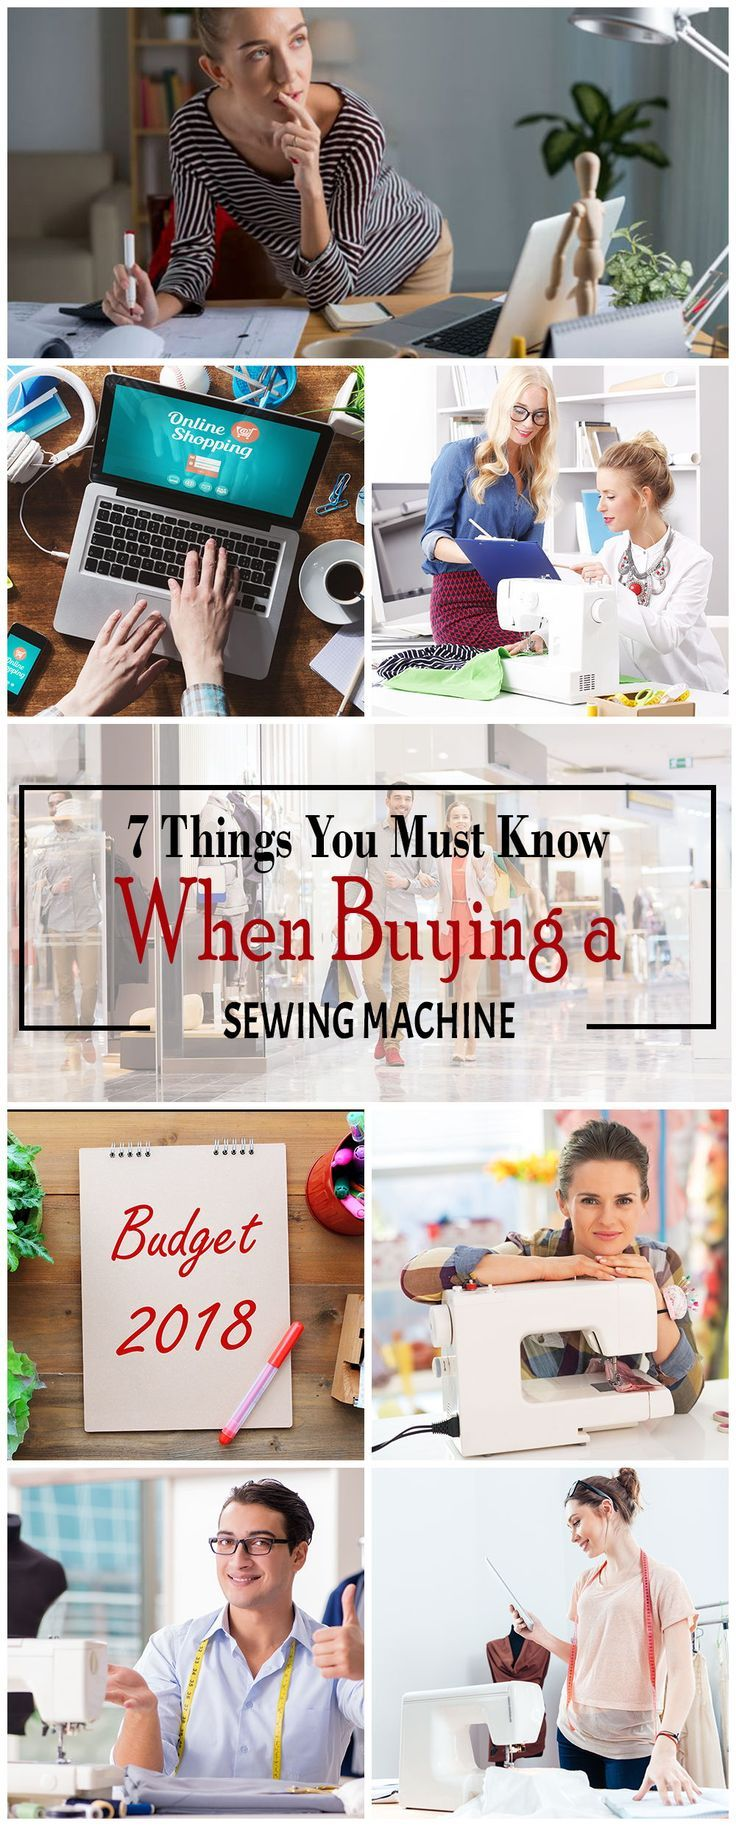 7 Things You Must Know When Buying a Sewing Machine ...